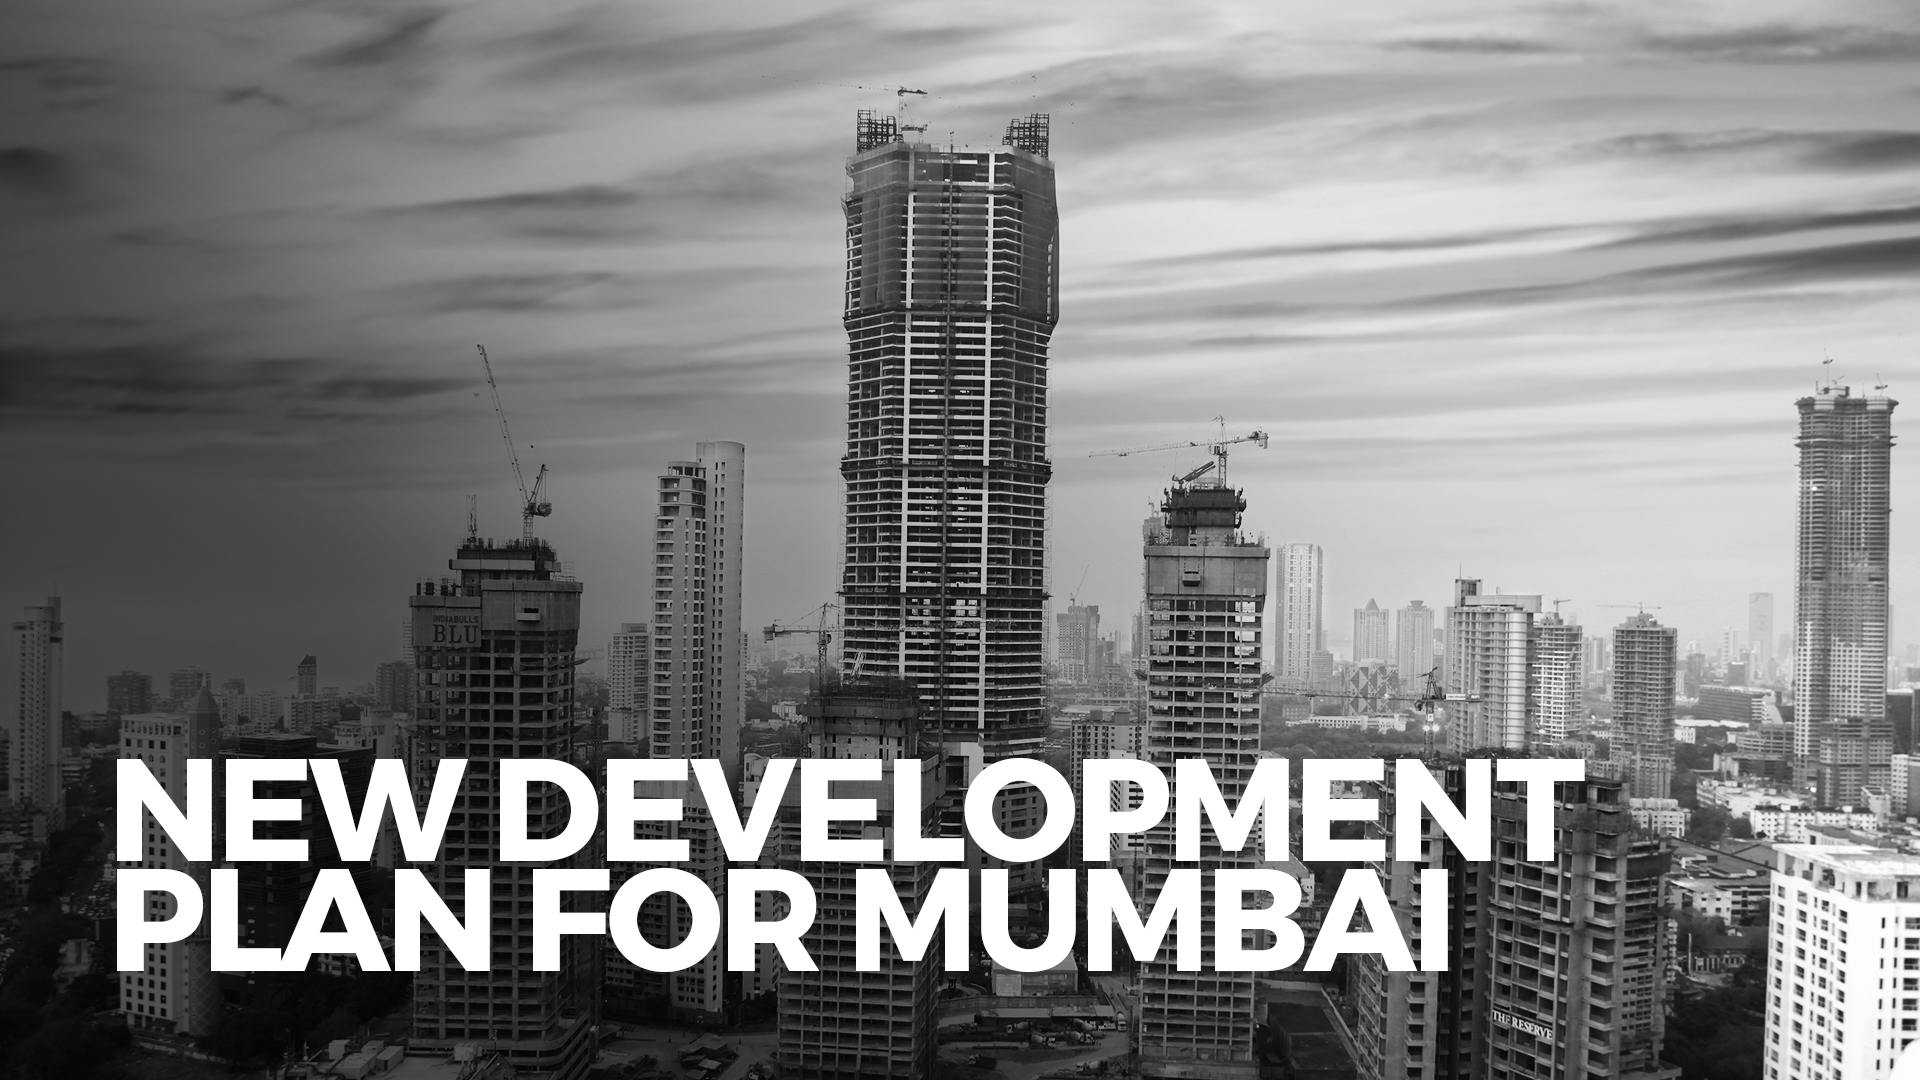 State Government To Approve New Development Plan For Mumbai Next Week